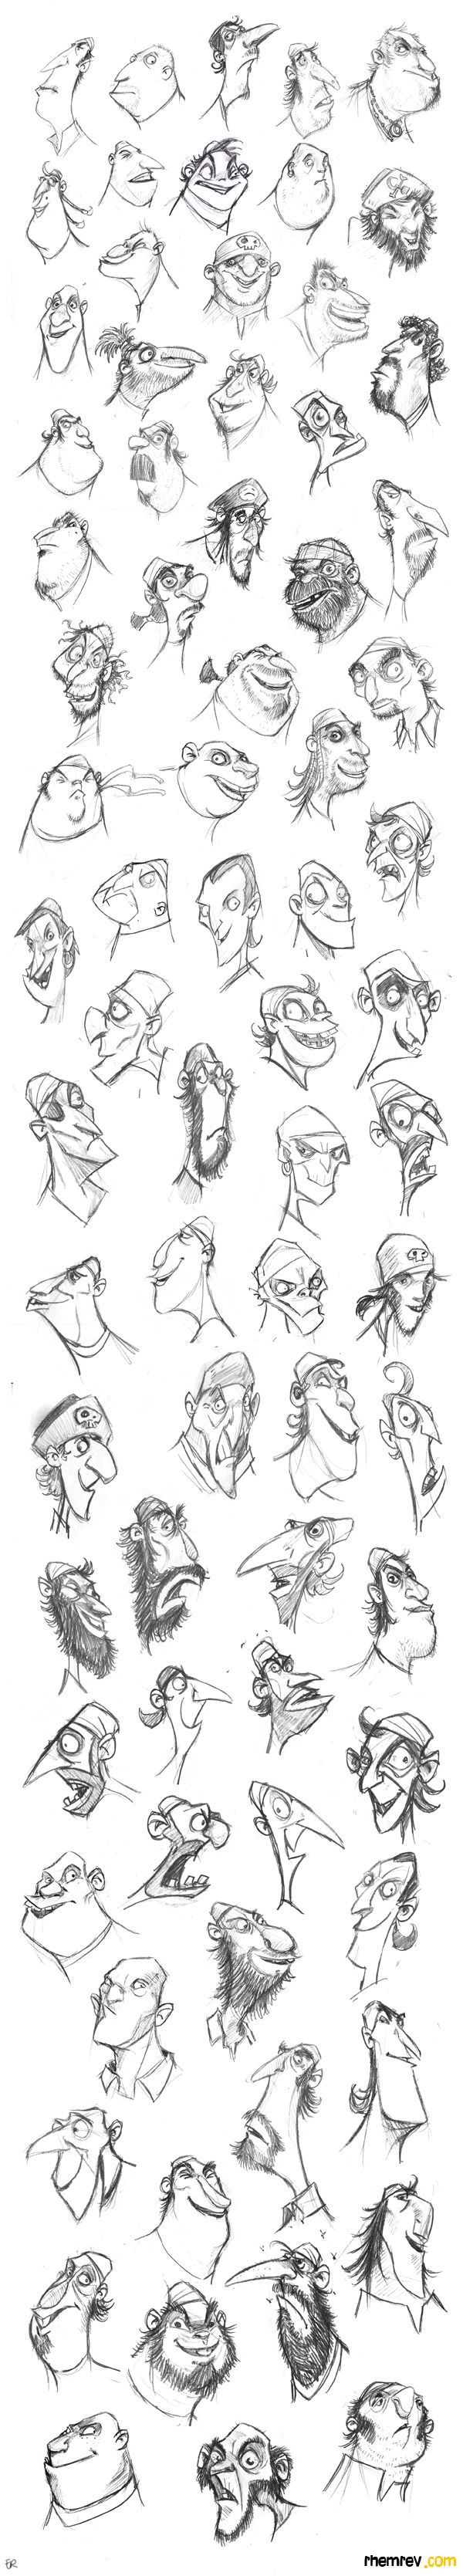 Character Design Quarterly 2 Visual Development : Best images about character design on pinterest